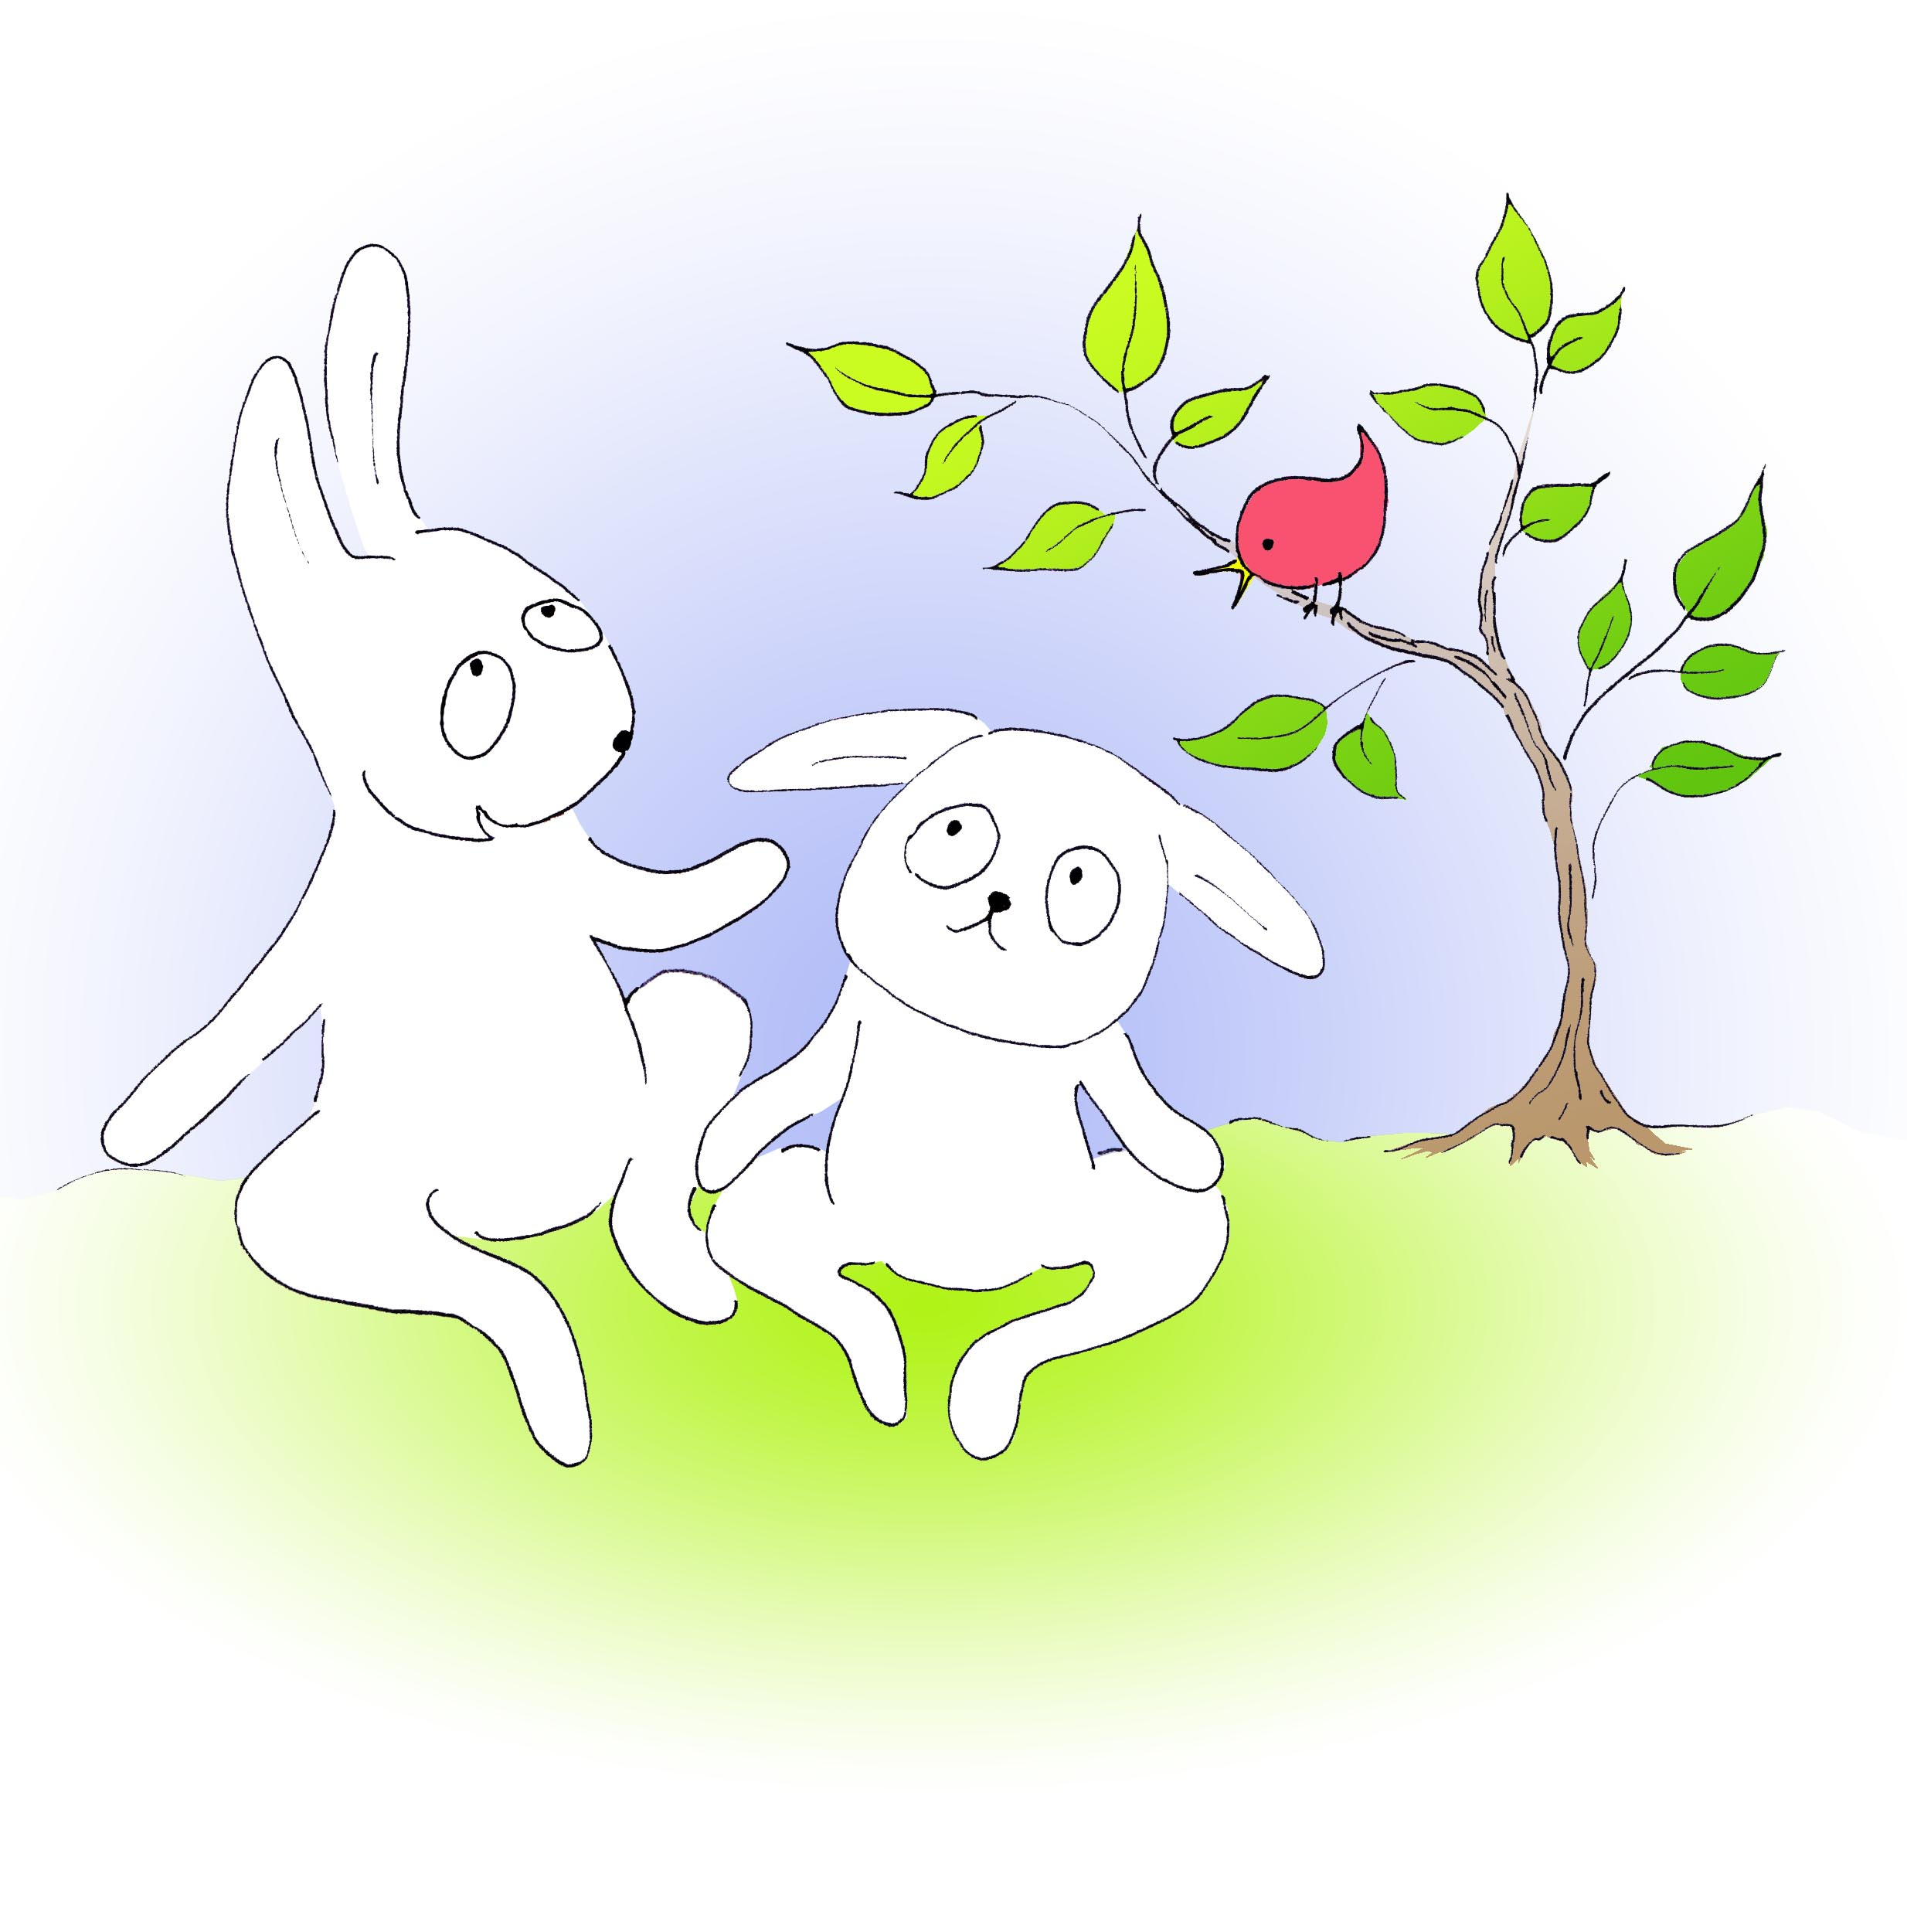 Springy and Tiny-a story of a special brother by Ifat Shuster - Illustrated by Irena Brodeski - Ourboox.com